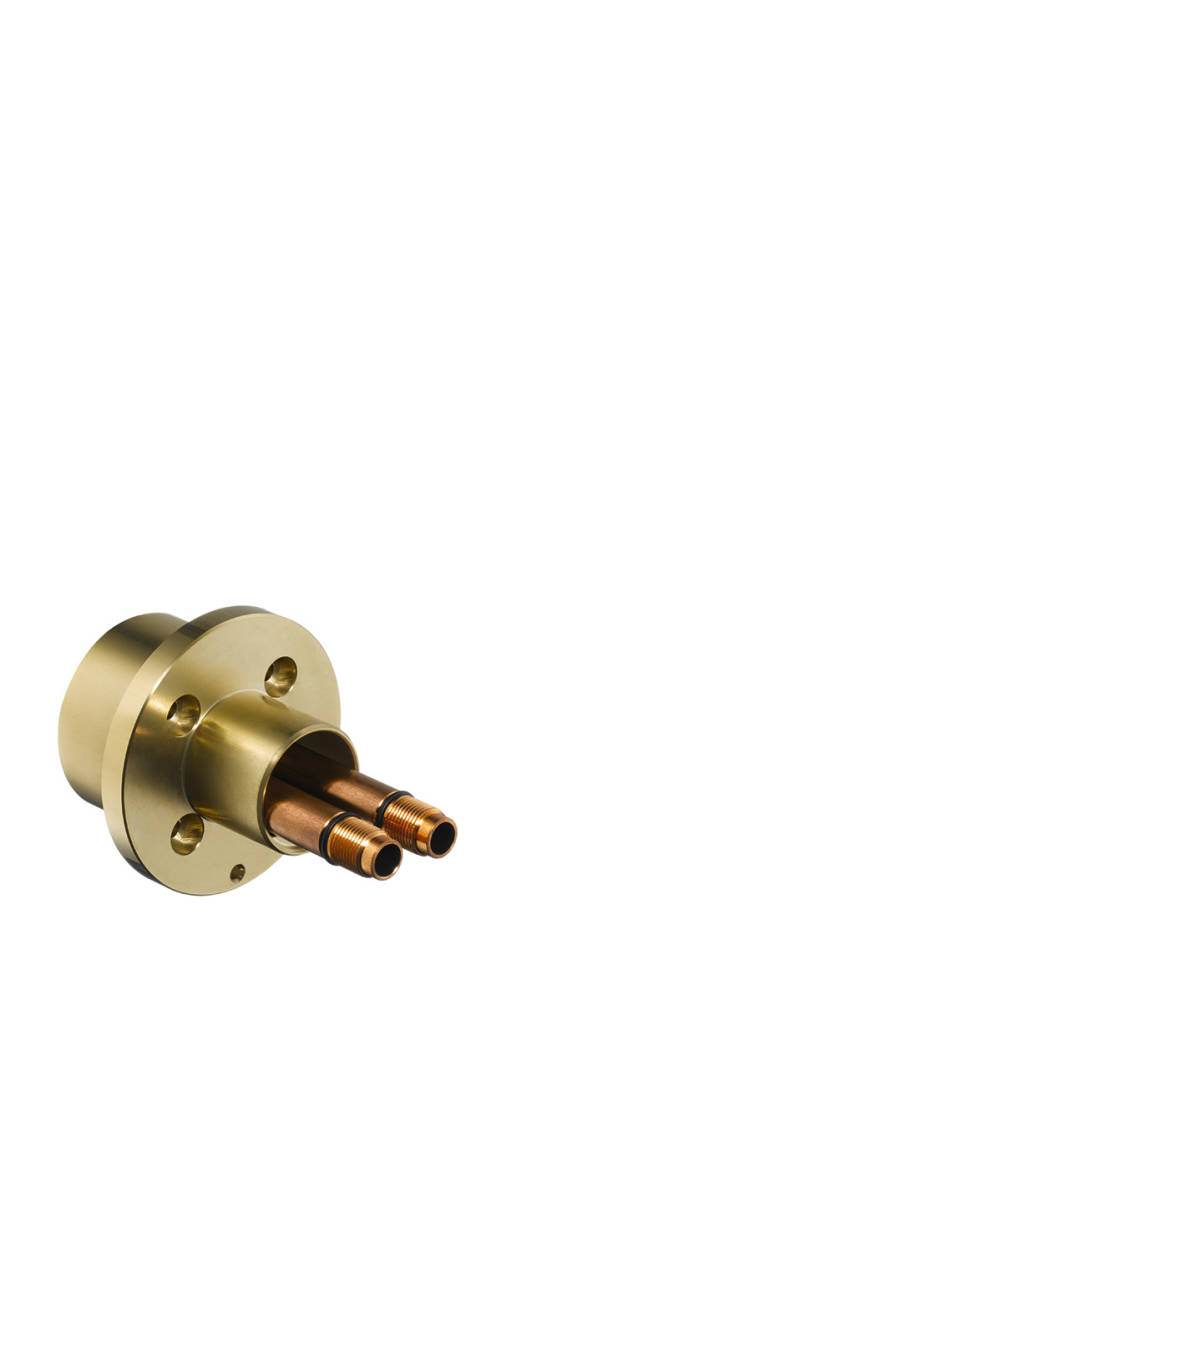 Extension set 28 mm for single lever basin mixer wall-mounted, n.a., 11980000